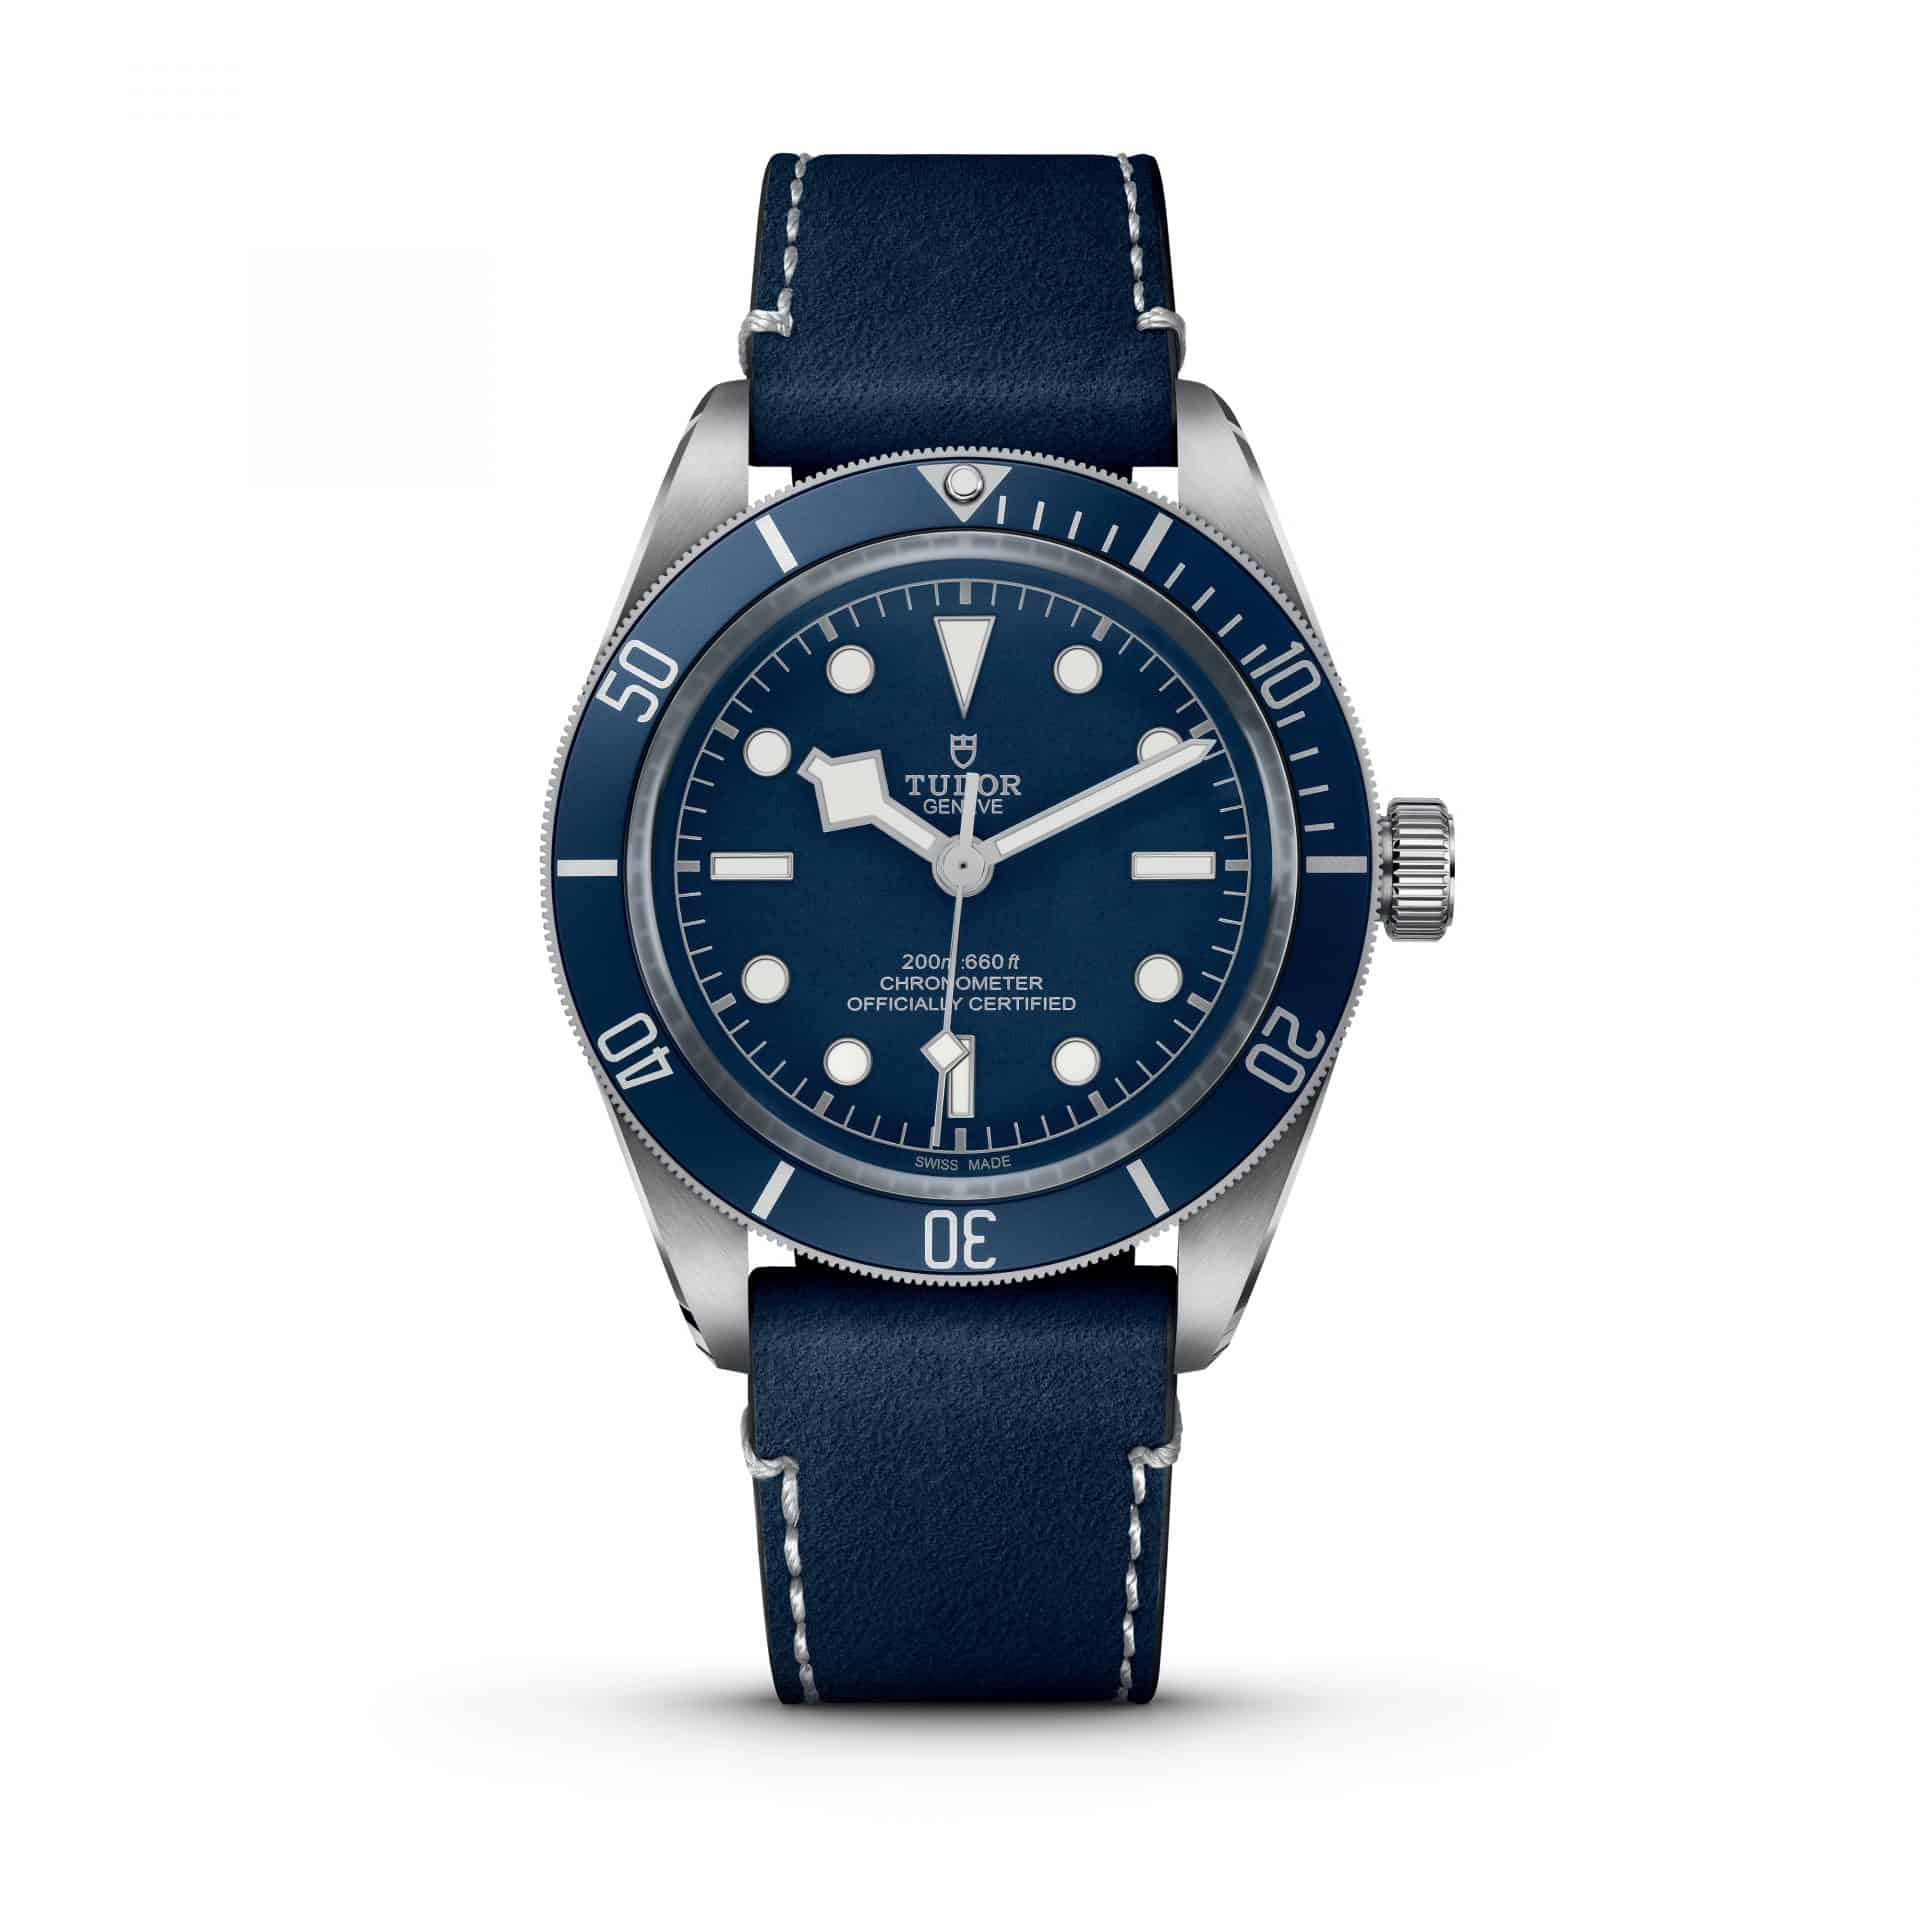 Die Variante Tudor Black Bay Fifty-Eight Navy Blue mit Soft Touch Band